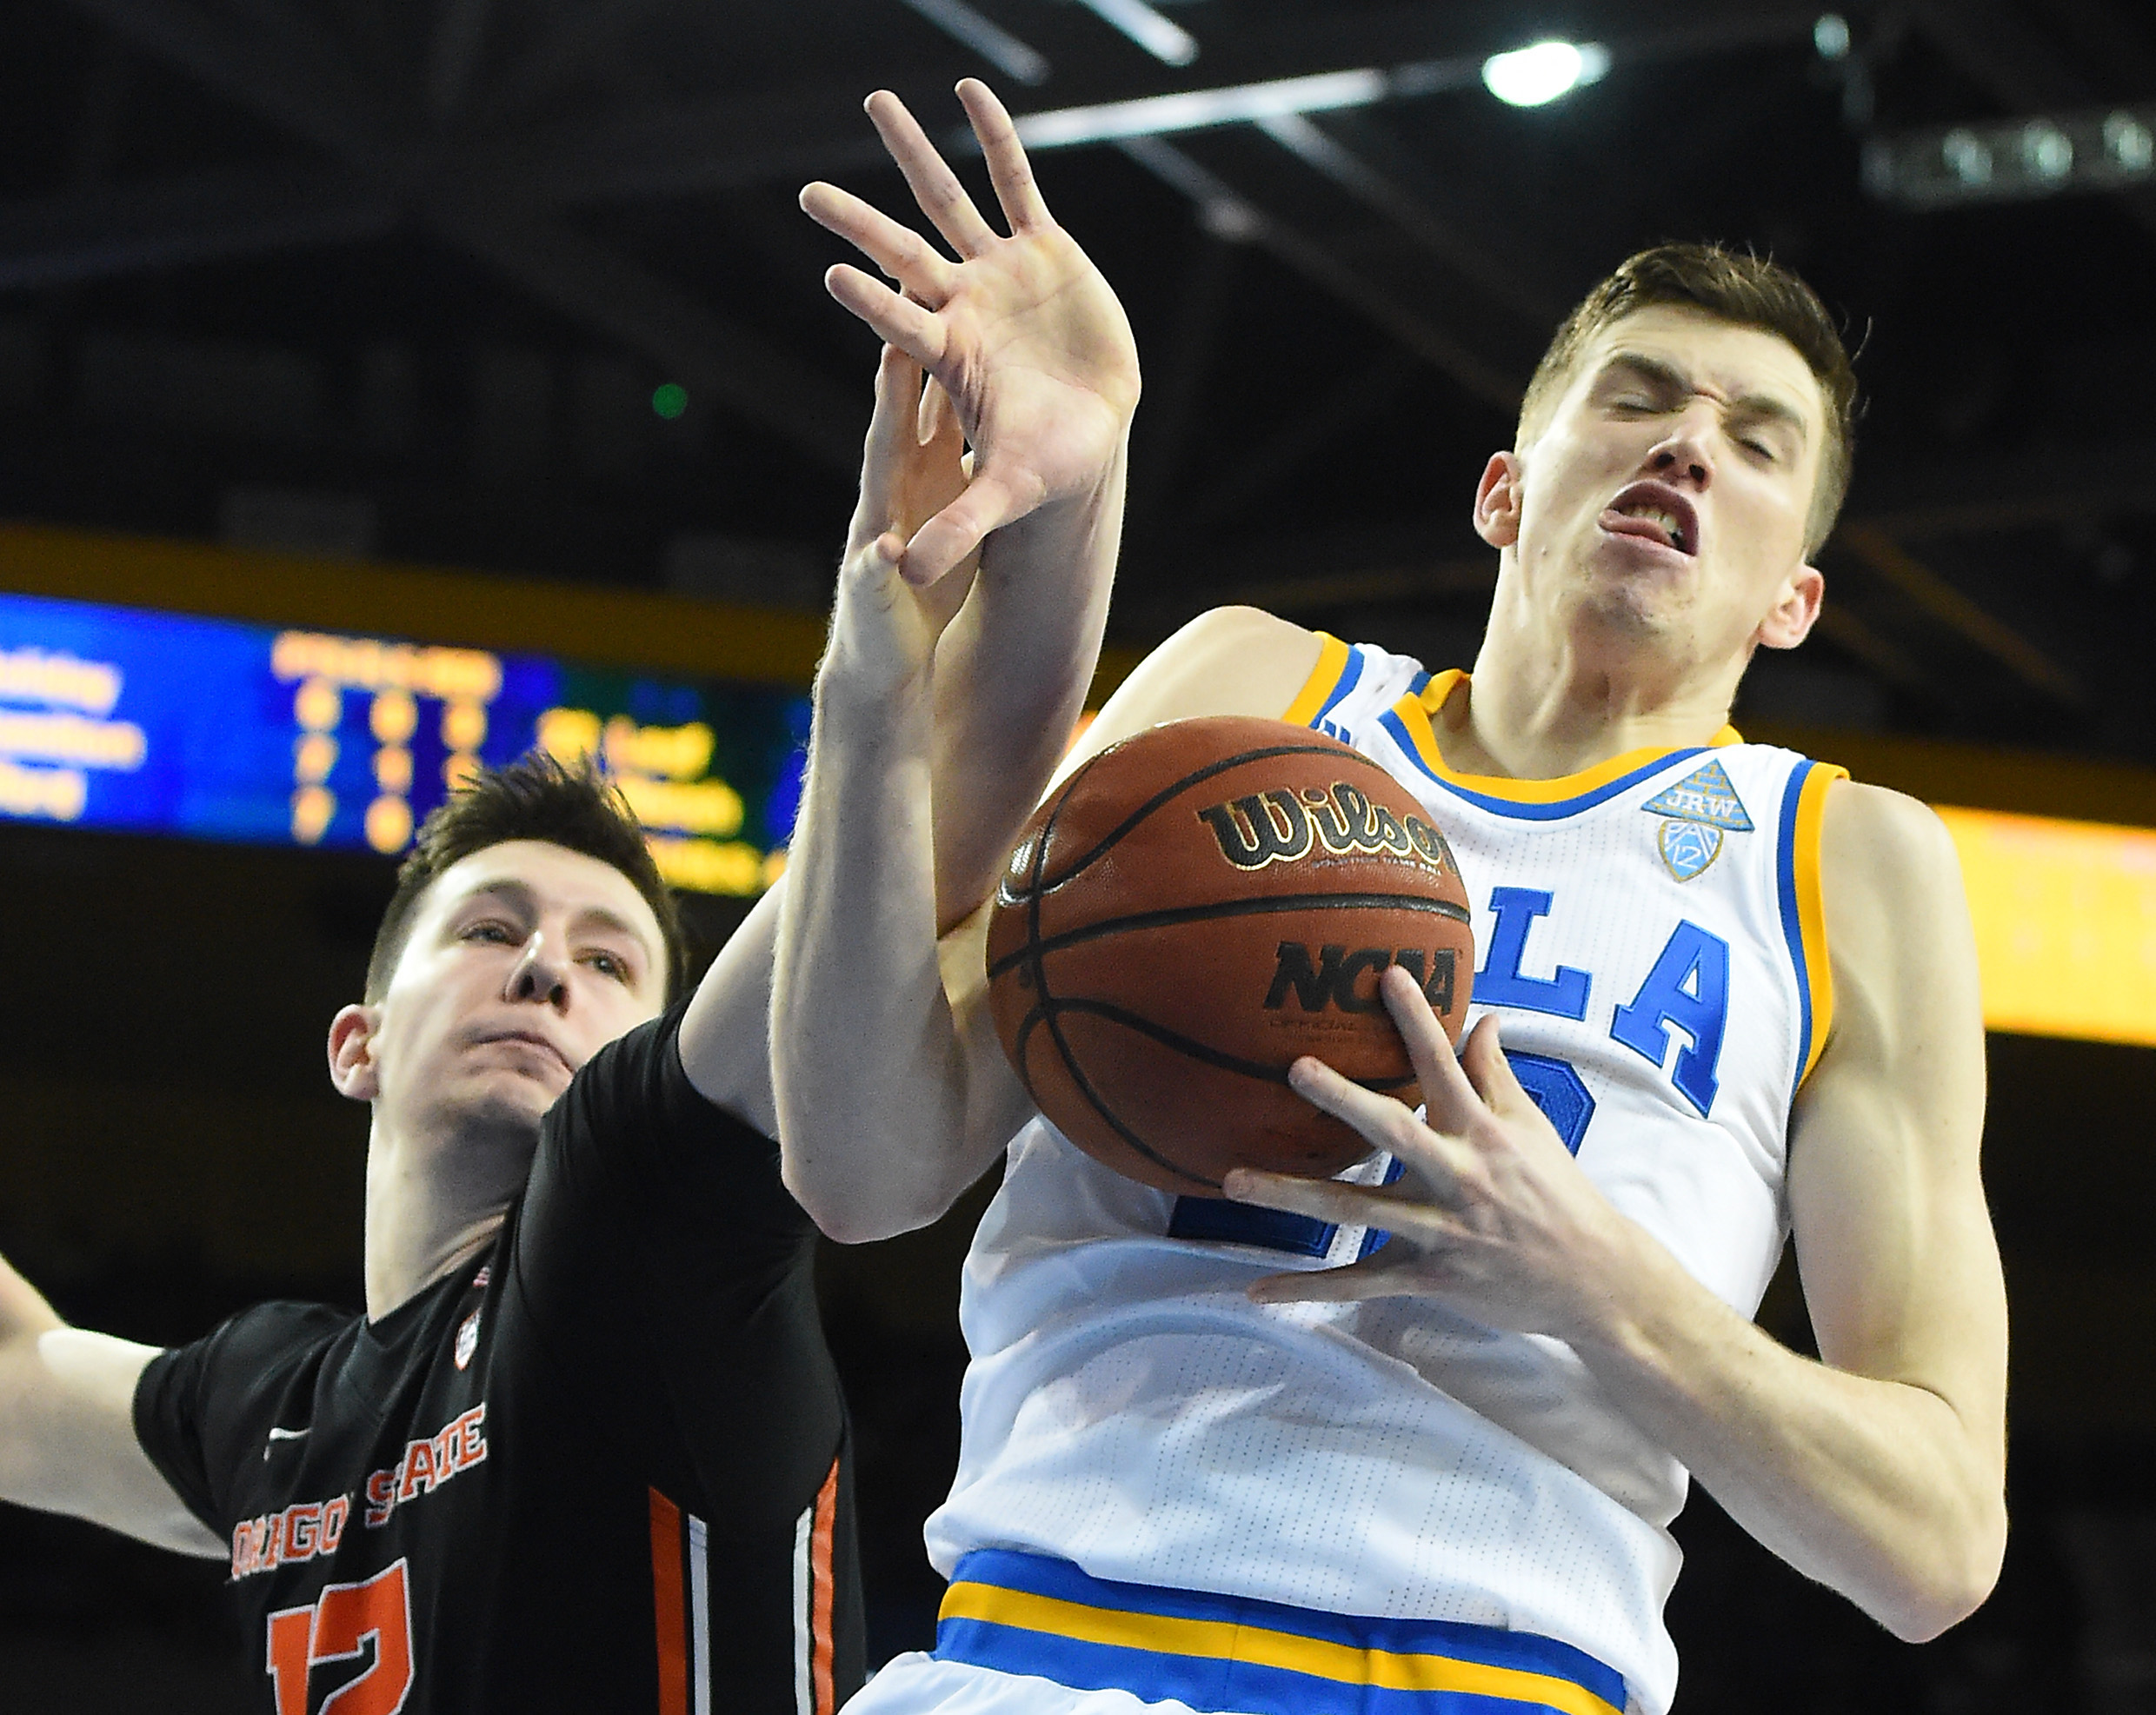 9874657-ncaa-basketball-oregon-state-at-ucla